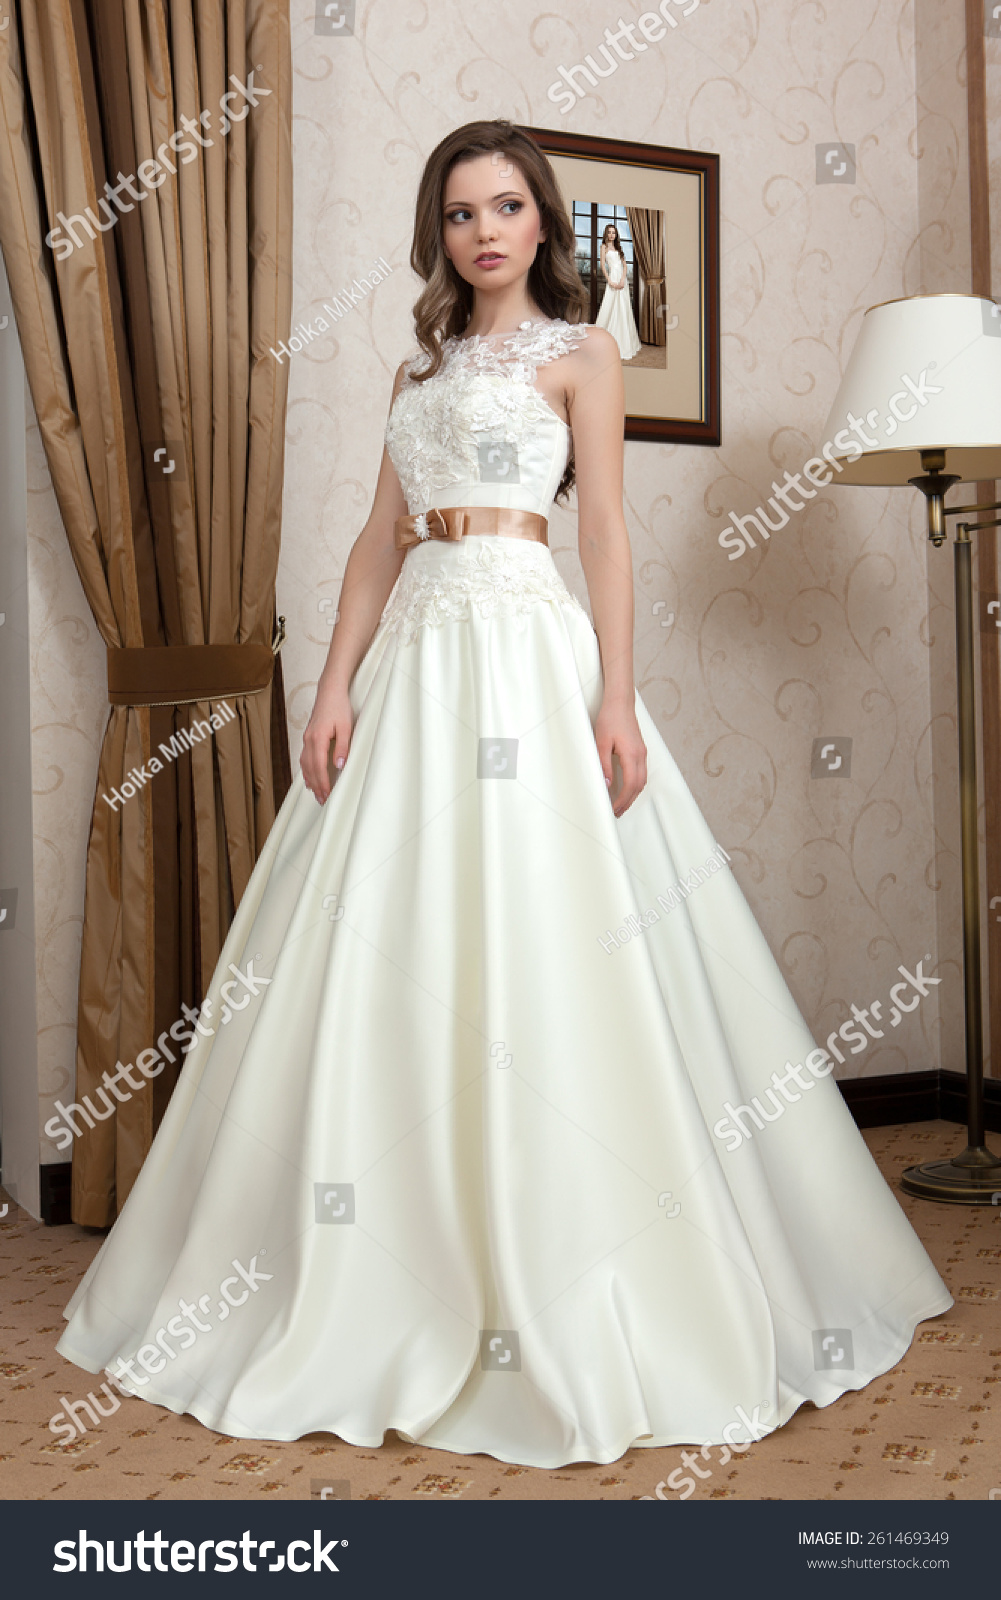 Wedding Dress Young Bride Tries On Stock Photo (Royalty Free ...